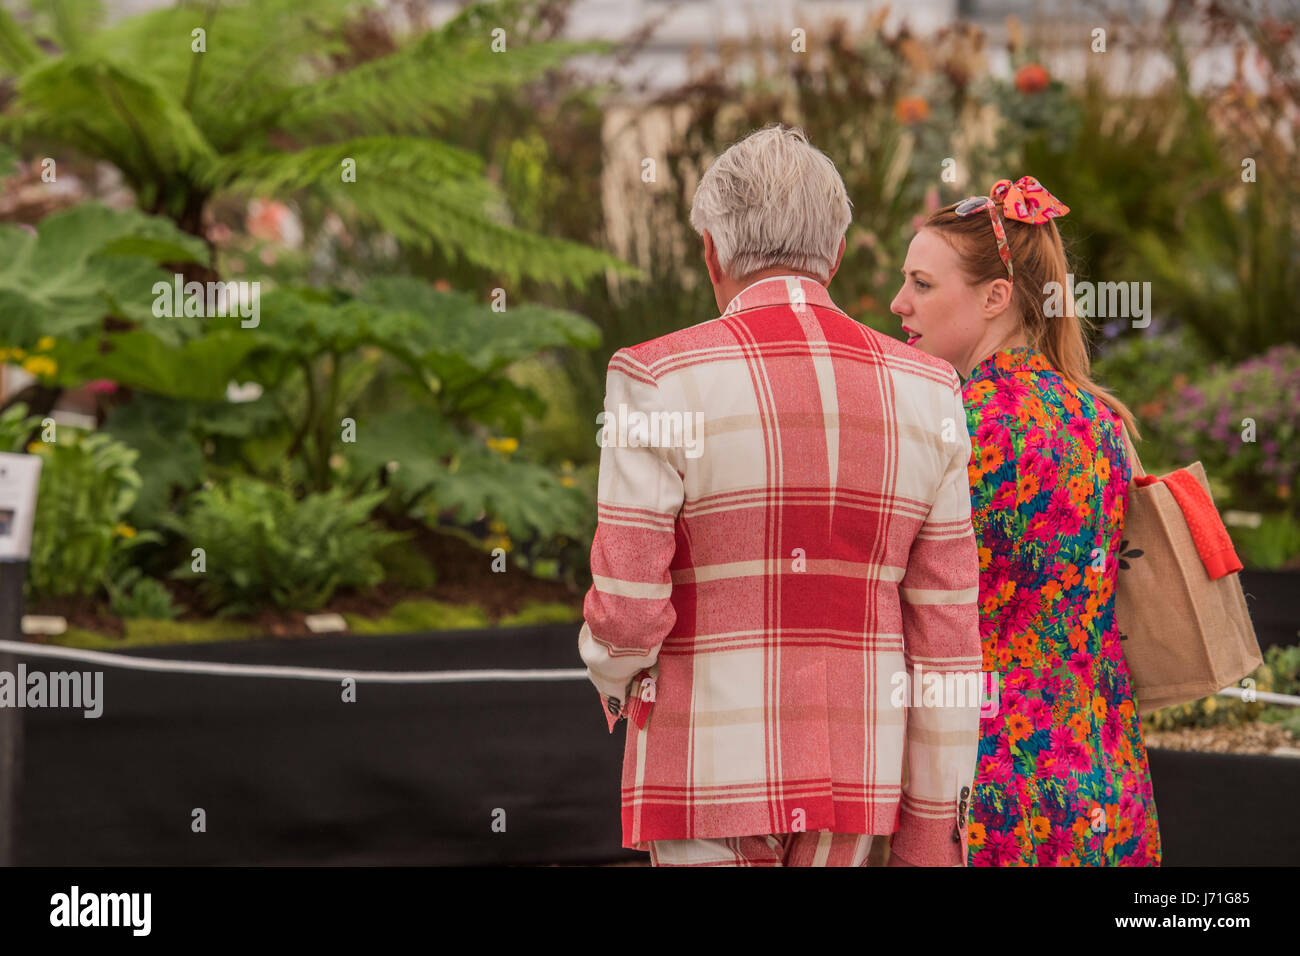 London, UK. 22nd May, 2017. The Chelsea Flower Show organised by the Royal Horticultural Society with M&G as - Stock Image